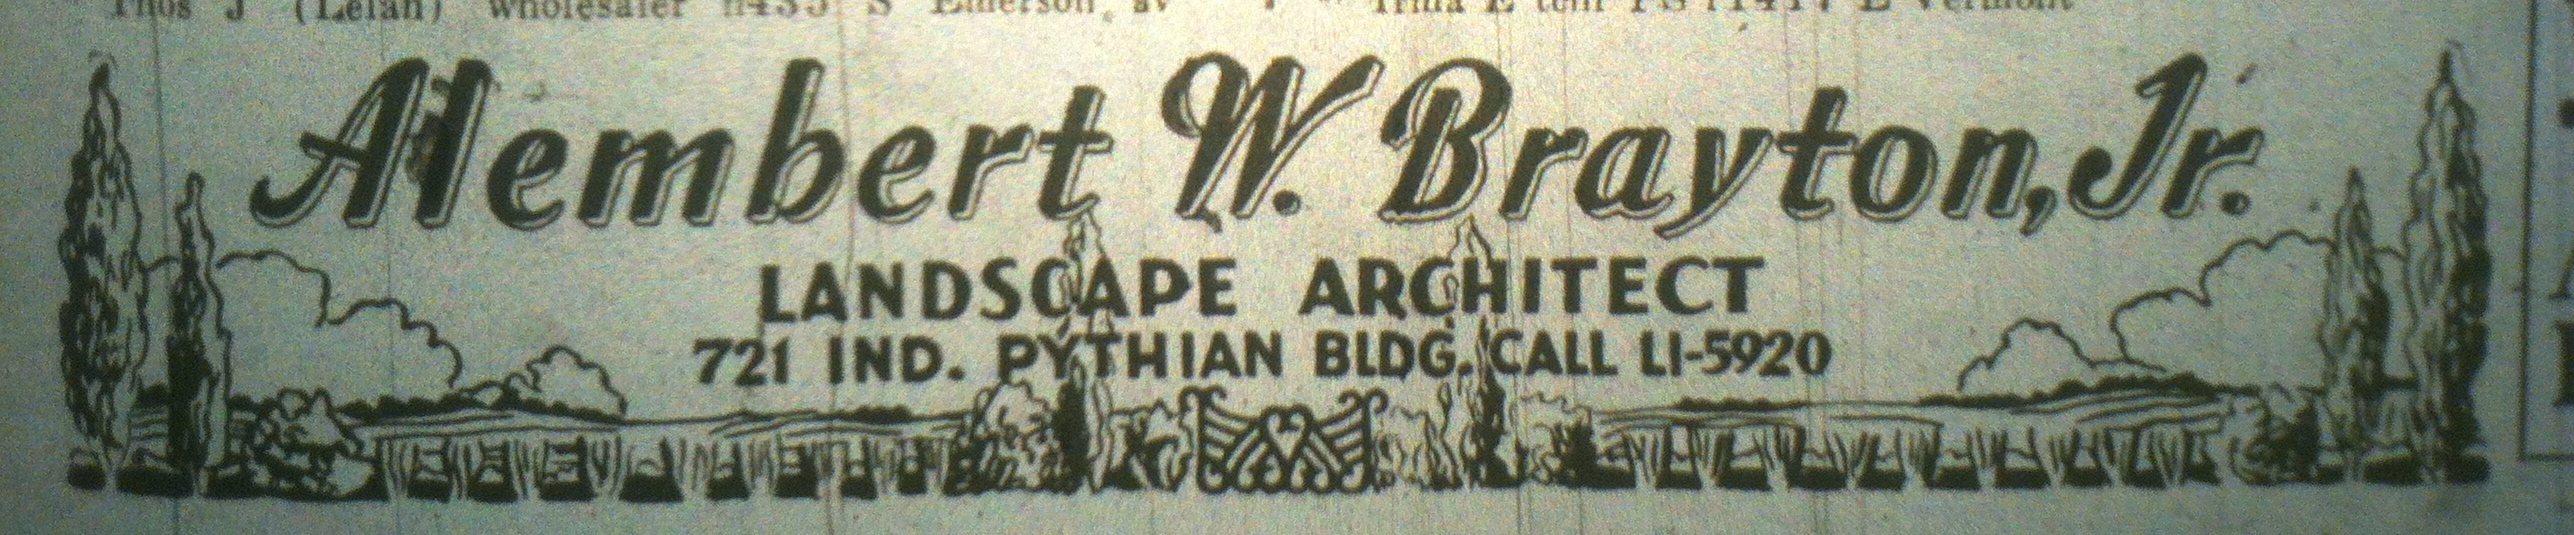 Sunday Ads: Landscape Architect